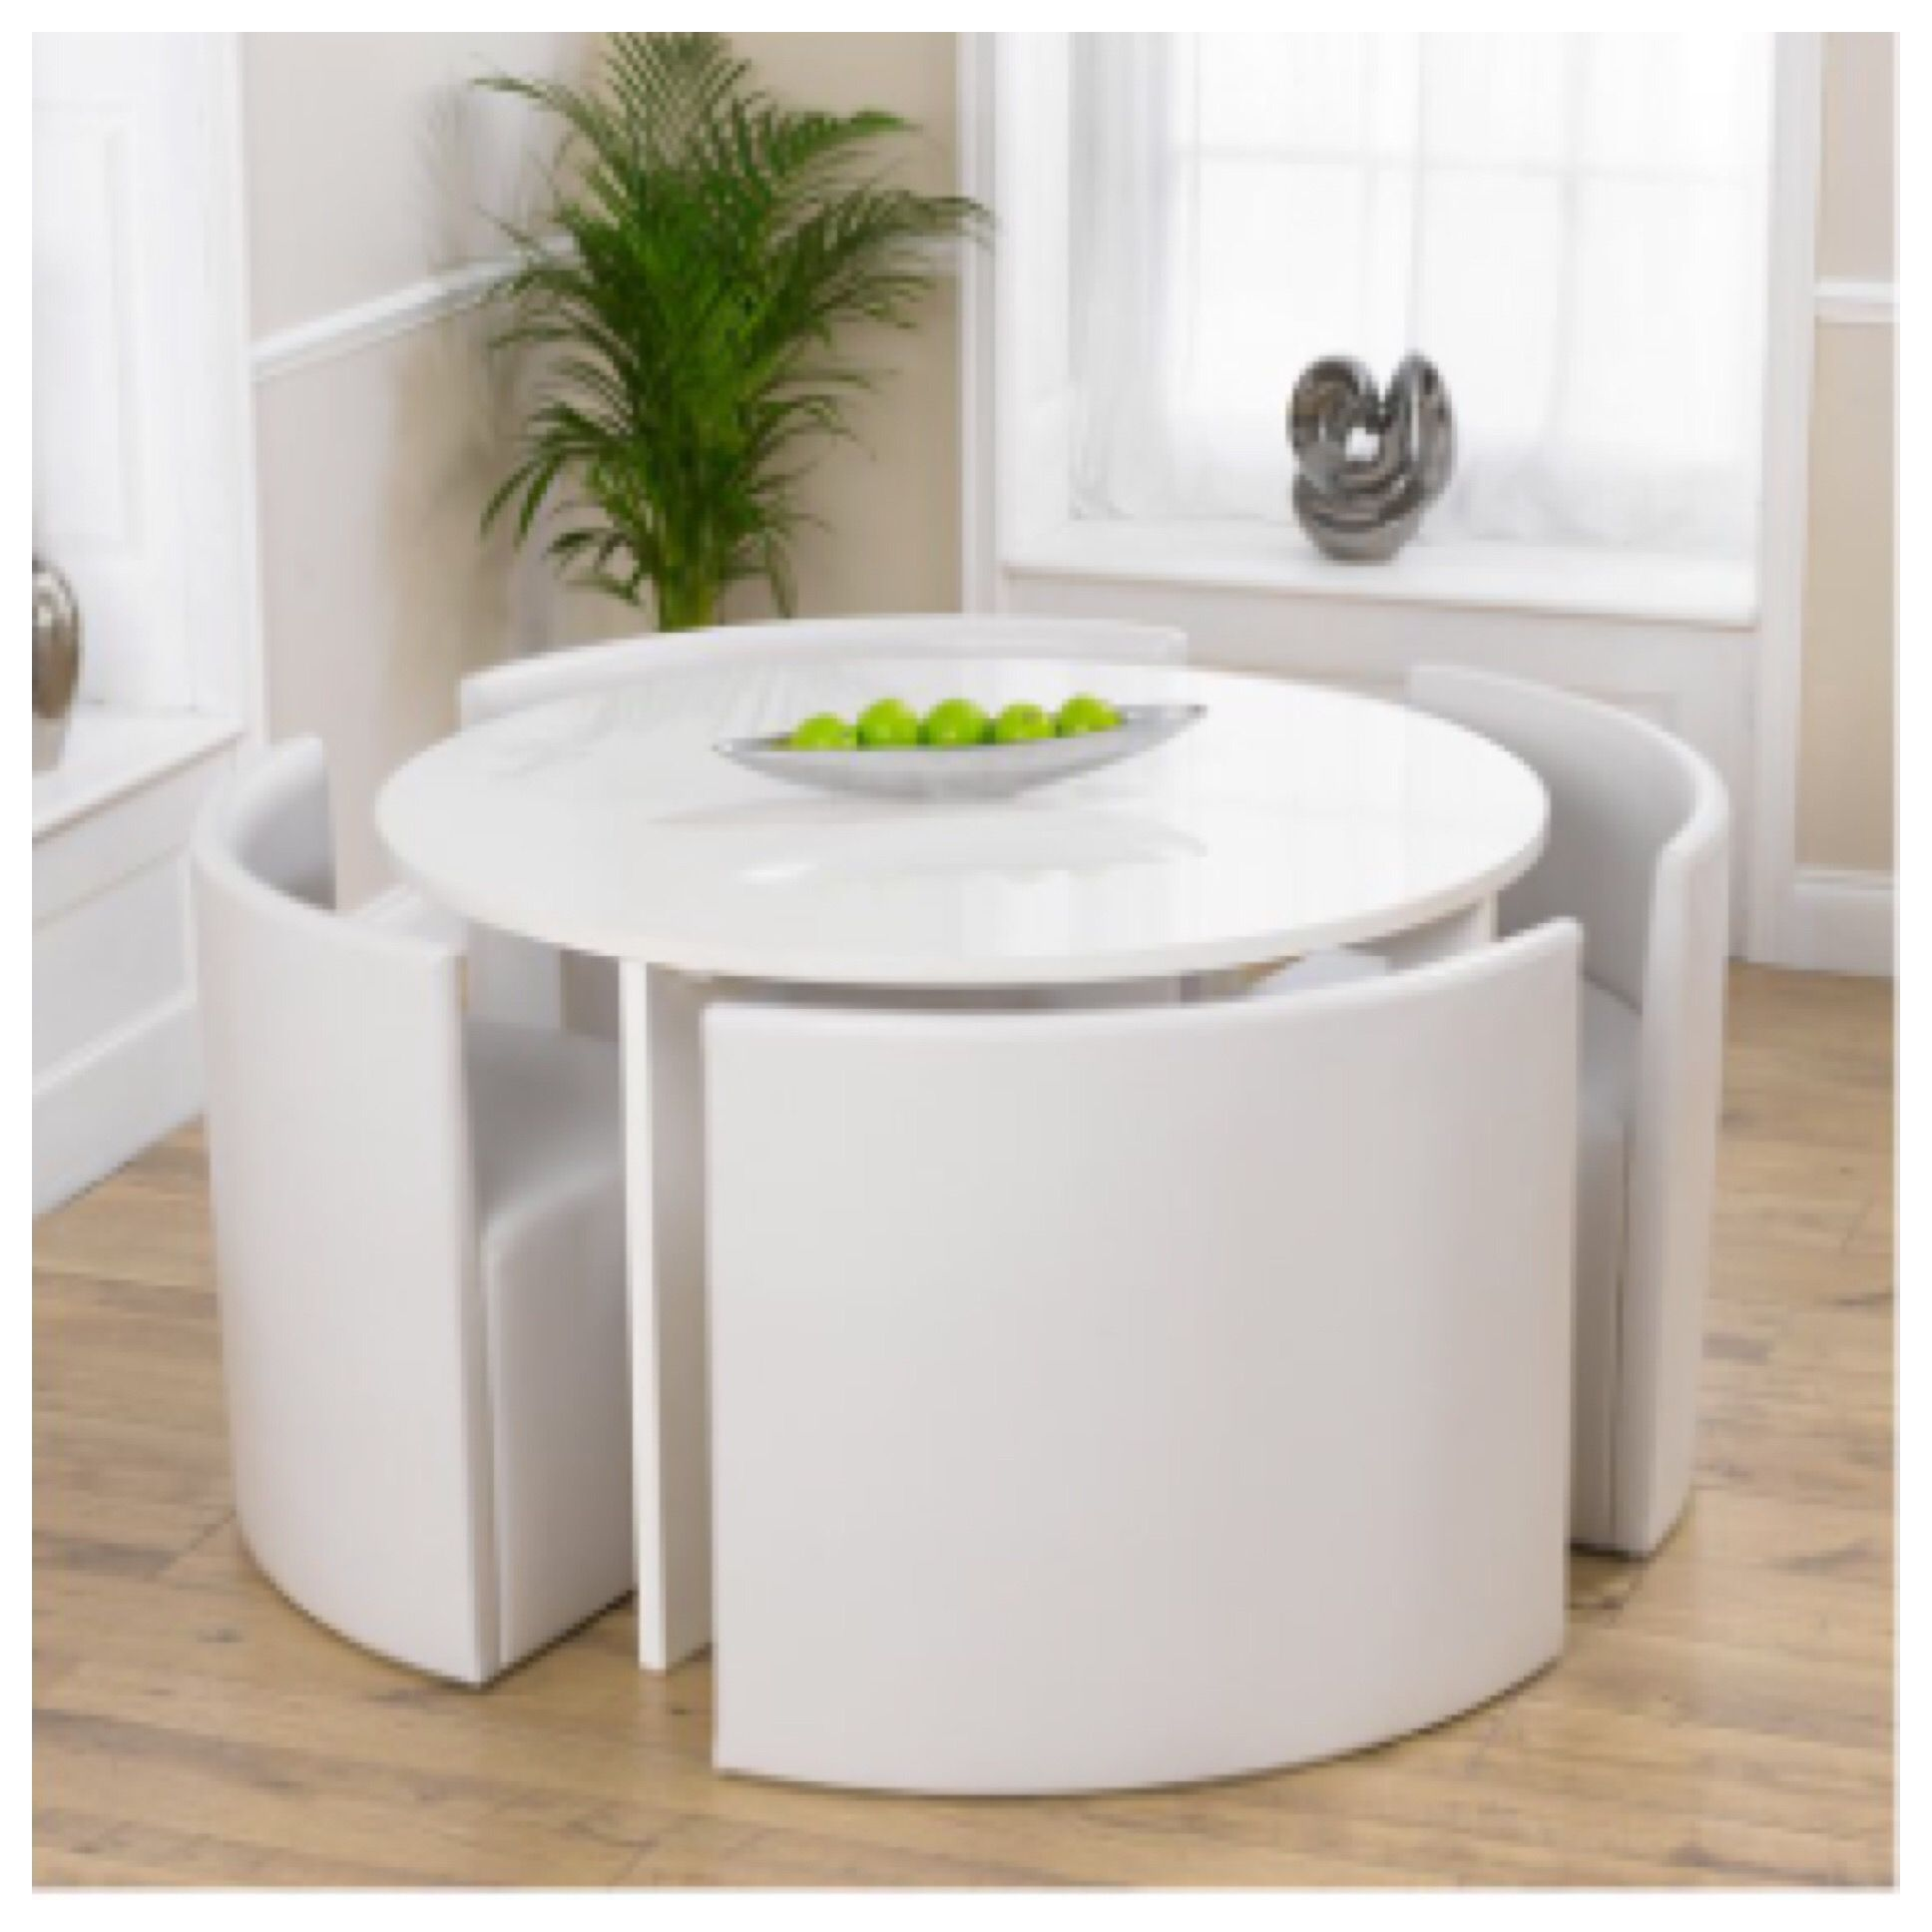 Minimalistliving Room Design Ideas: More White, I Love This Table And Chairs From @Wayfair, It